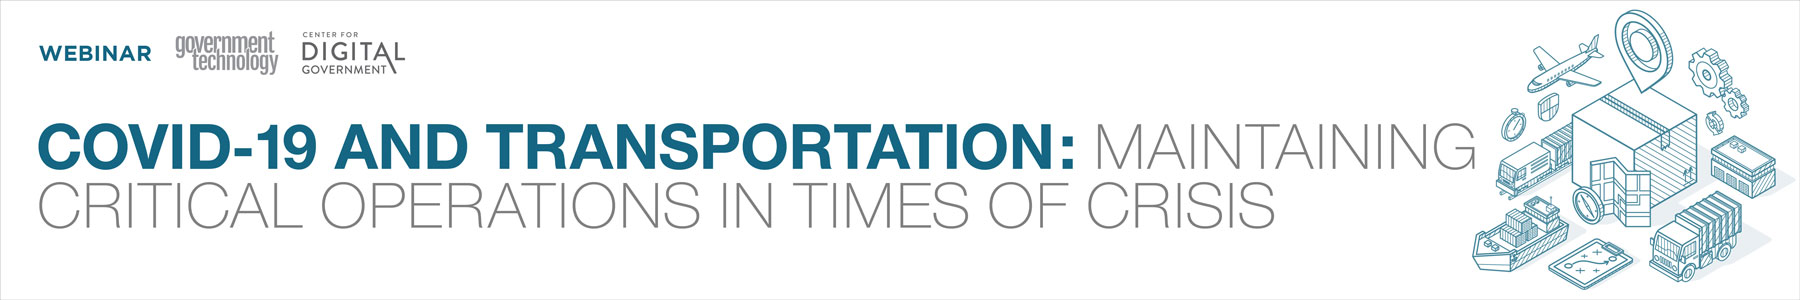 COVID-19 and Transportation: Maintaining Critical Operations in Times of Crisis